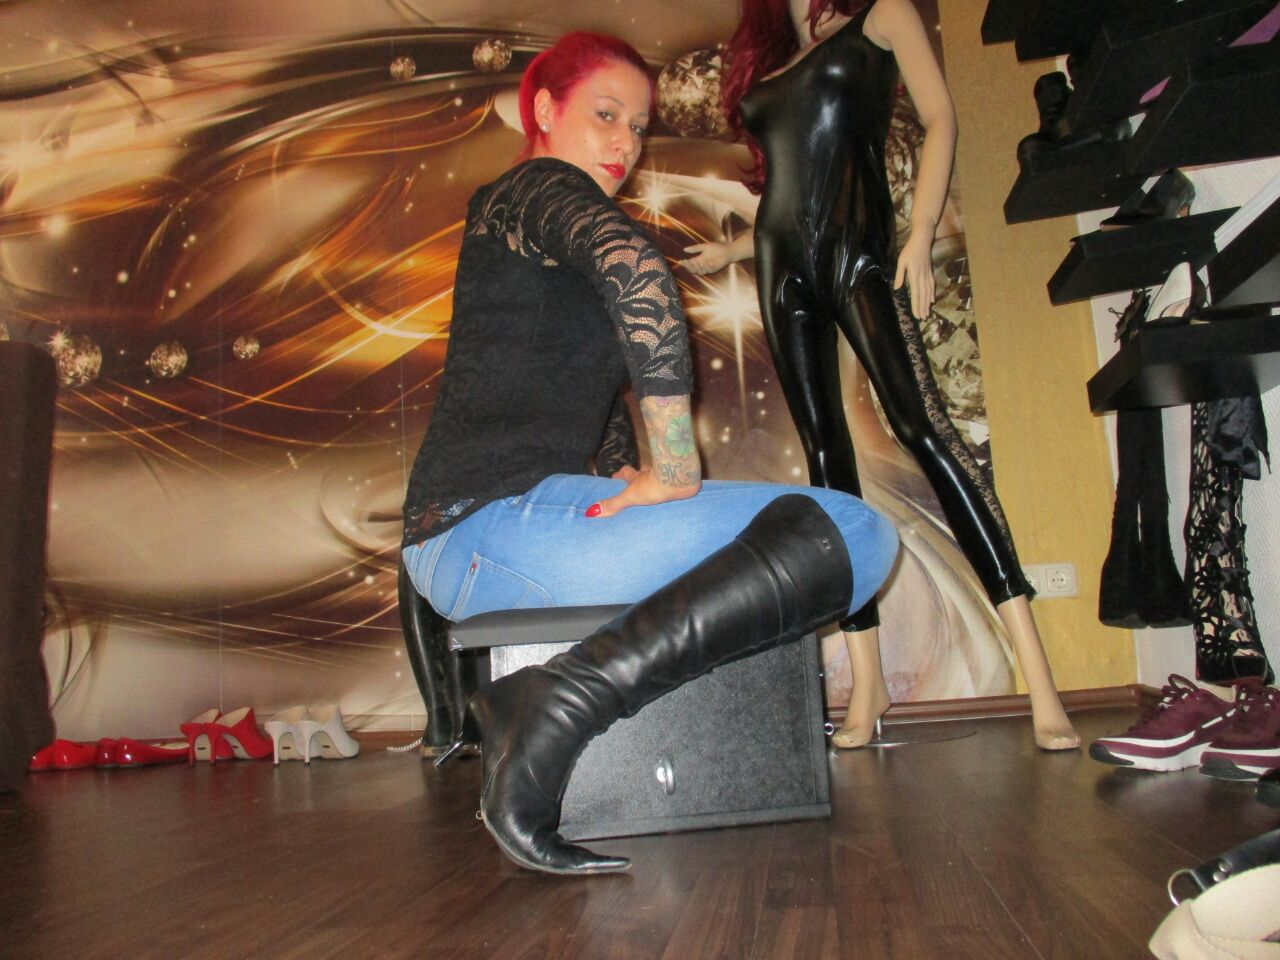 Amazon Jeans Lady Mira Aus Hannover - Facesitting